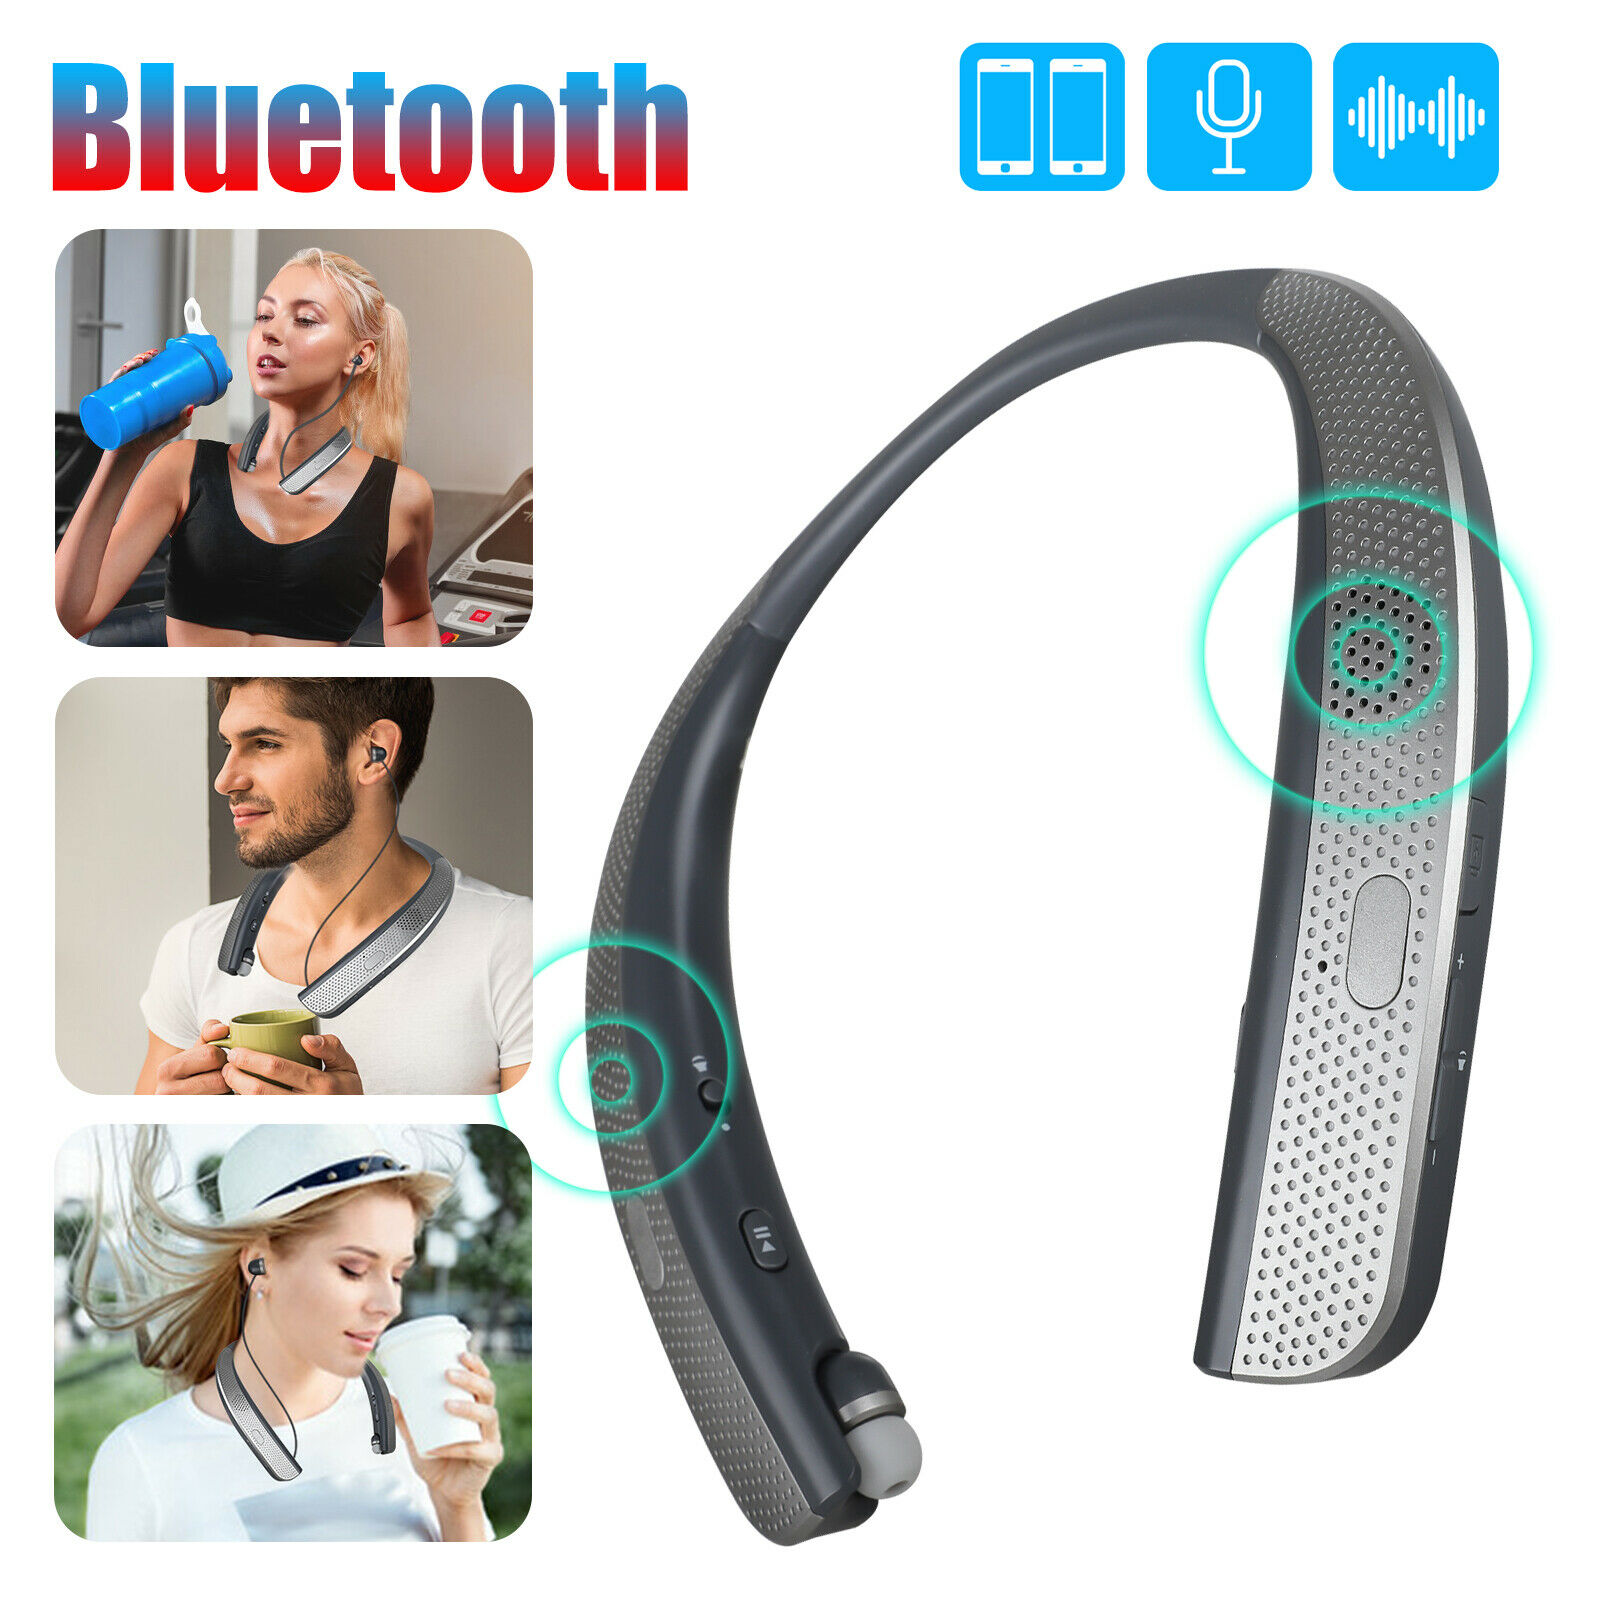 Best Wireless Headphones Bluetooth Earbuds For Iphone 7 With Mic Running Budmi For Sale Online Ebay